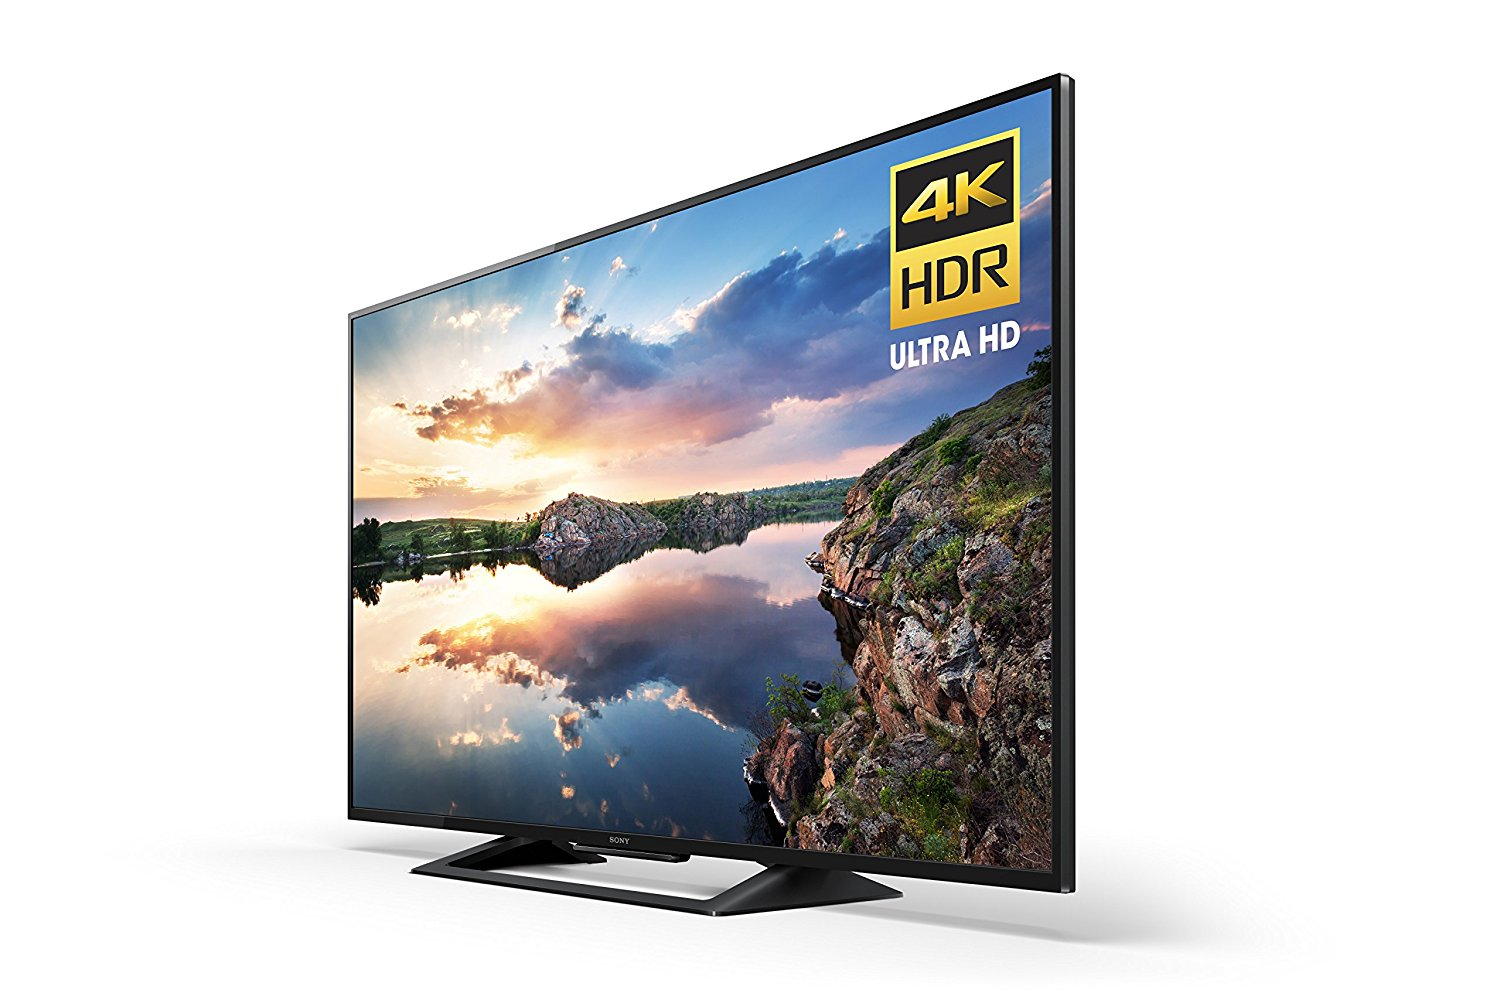 Sony 70-Inch 4k UHD Smart TV